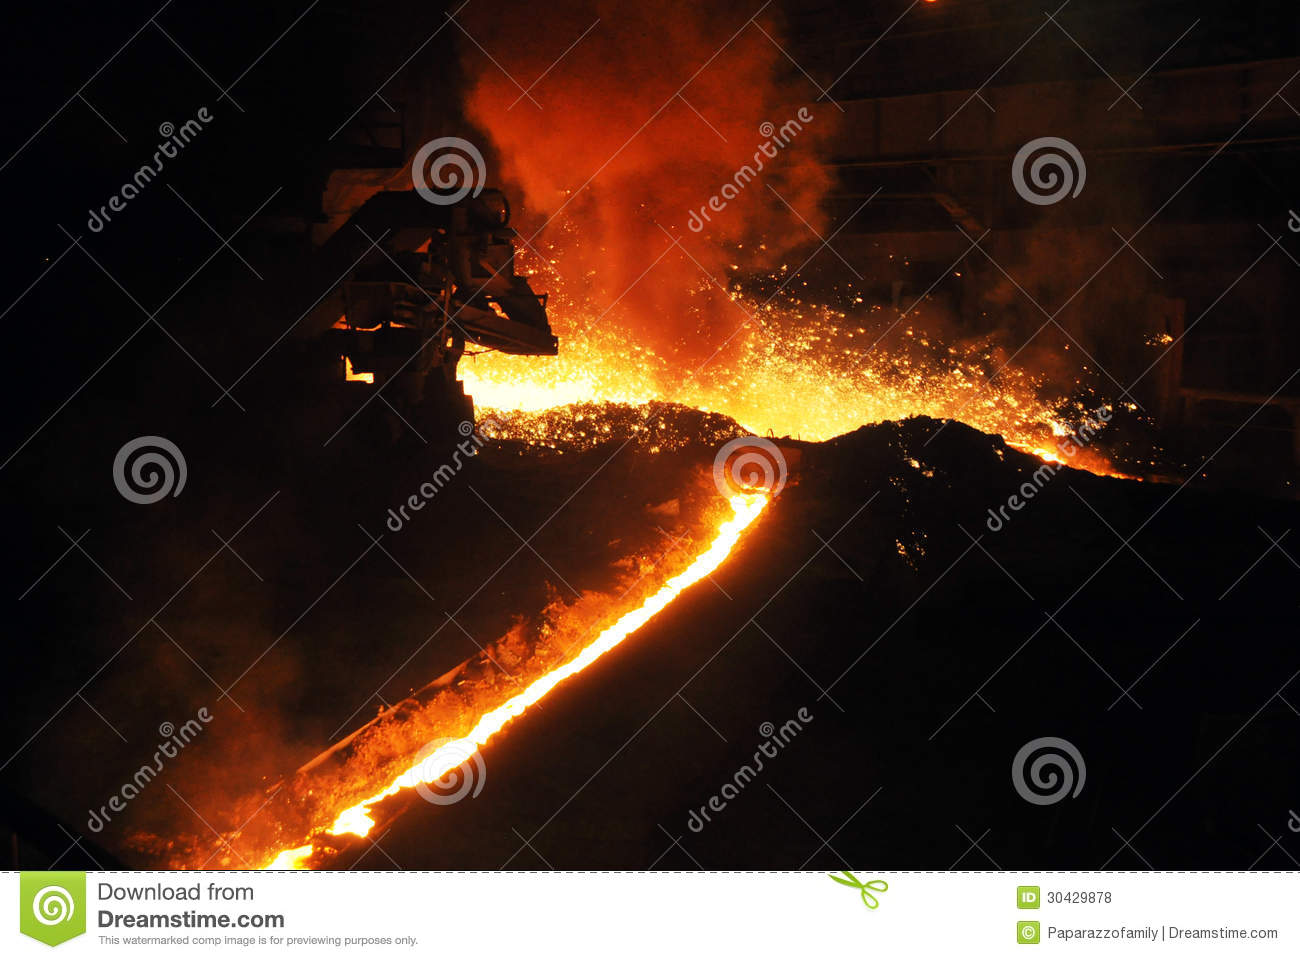 streams of molten iron in a blast furnace the photo was made ??in steel plant located ukraine